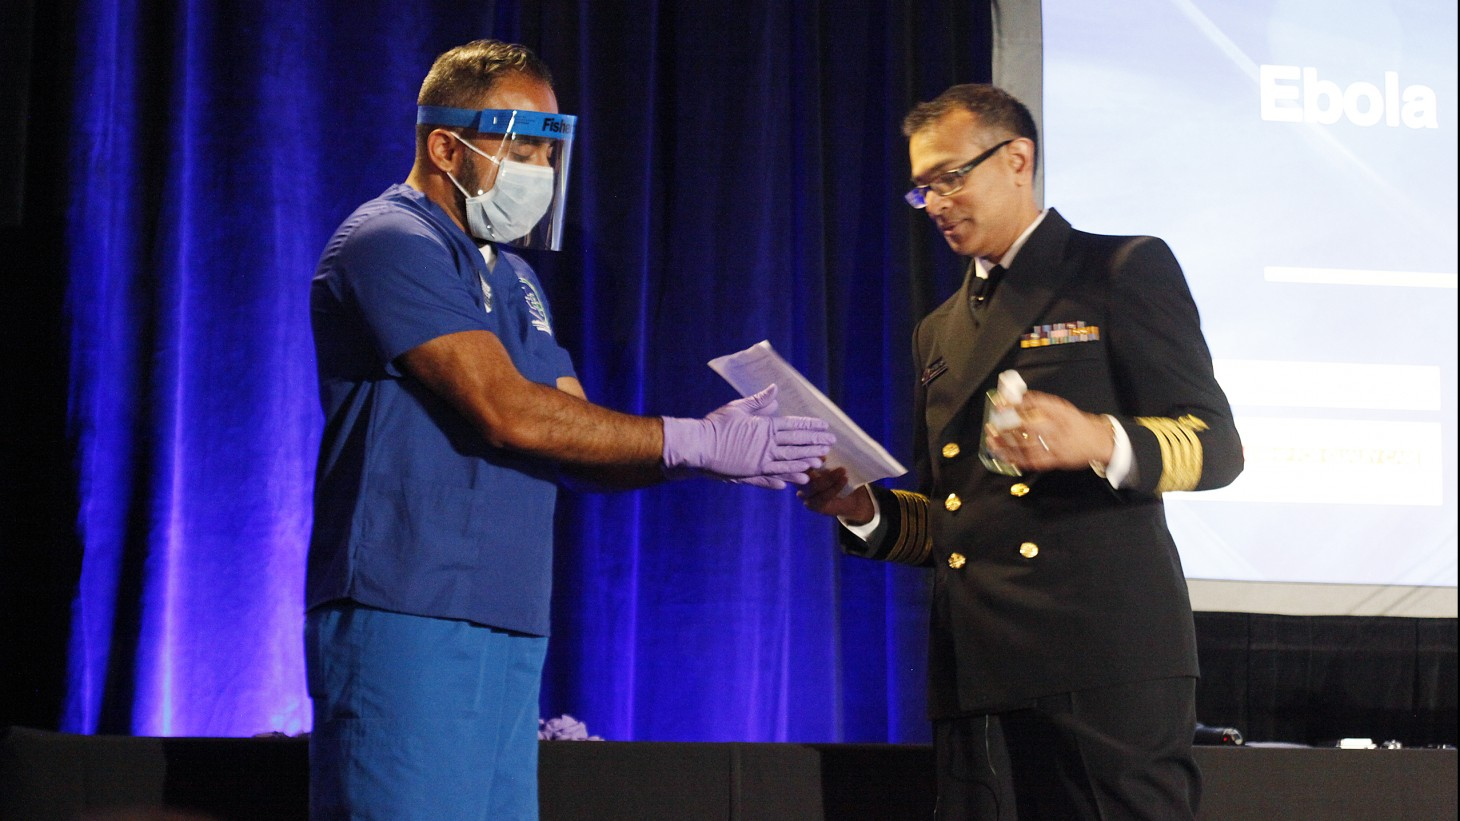 Two health care workers showing protective gear (gloves, mask, face shield)